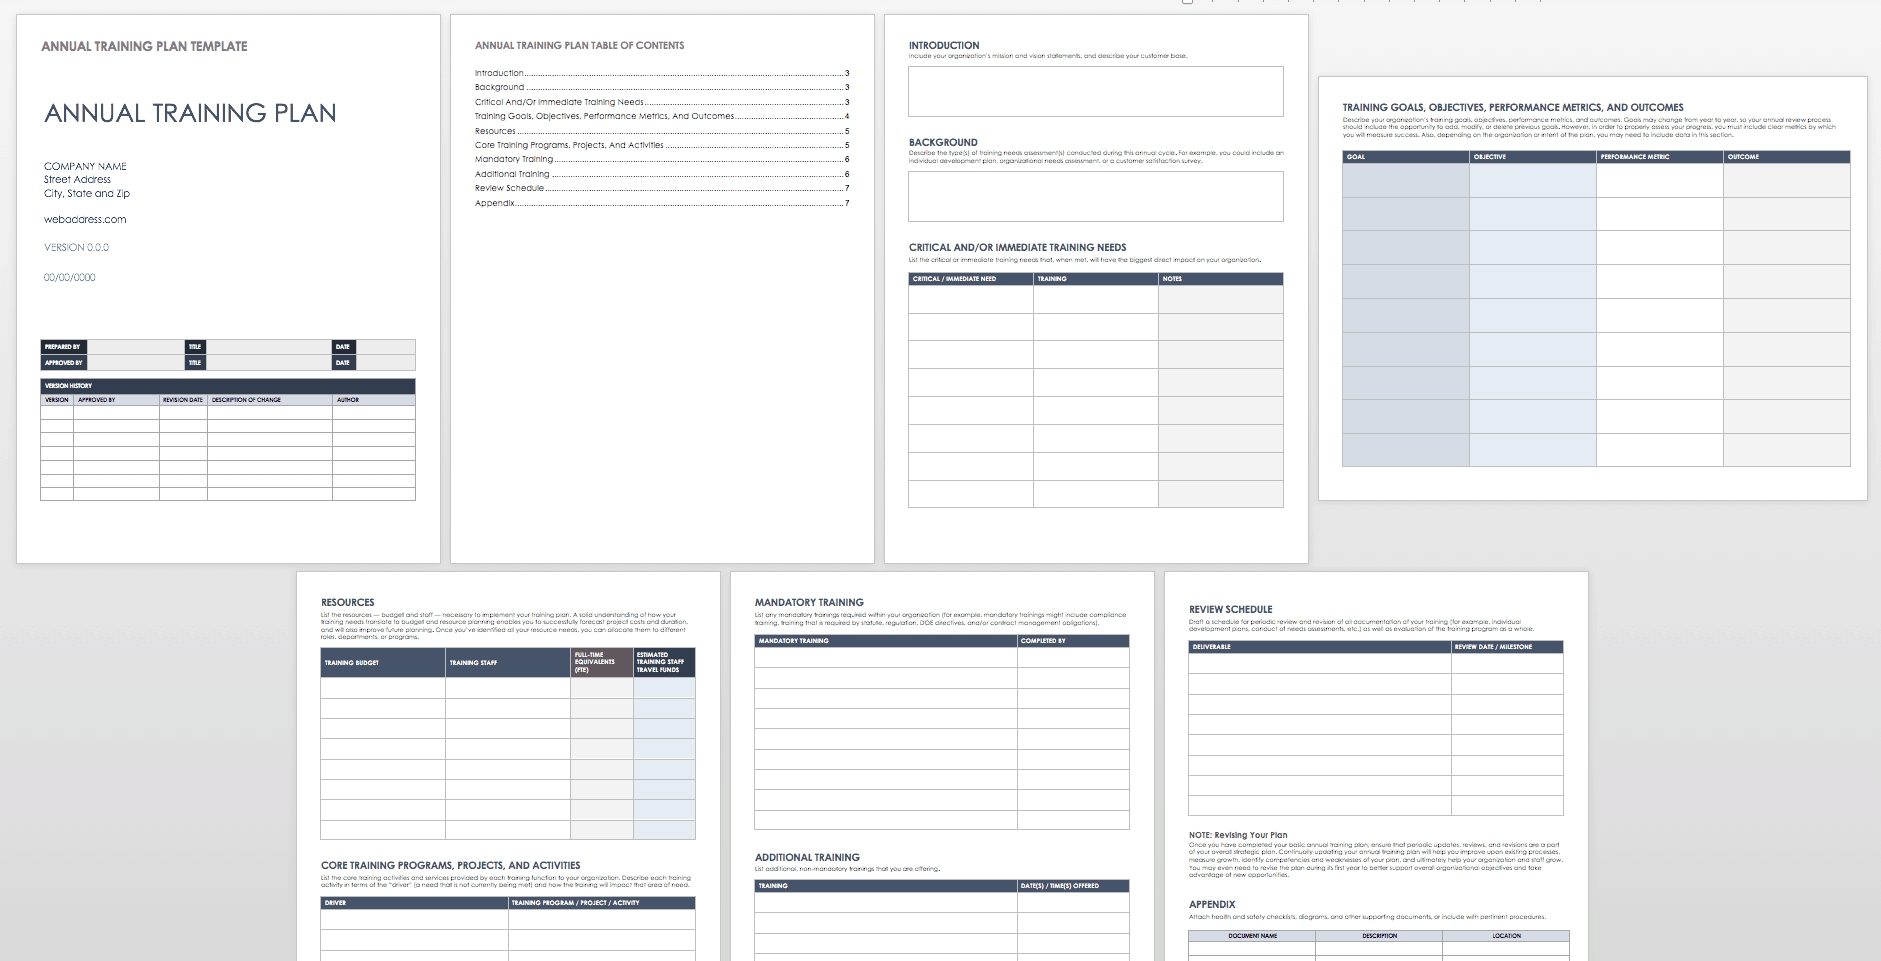 Free Training Plan Templates For Business Use | Smartsheet